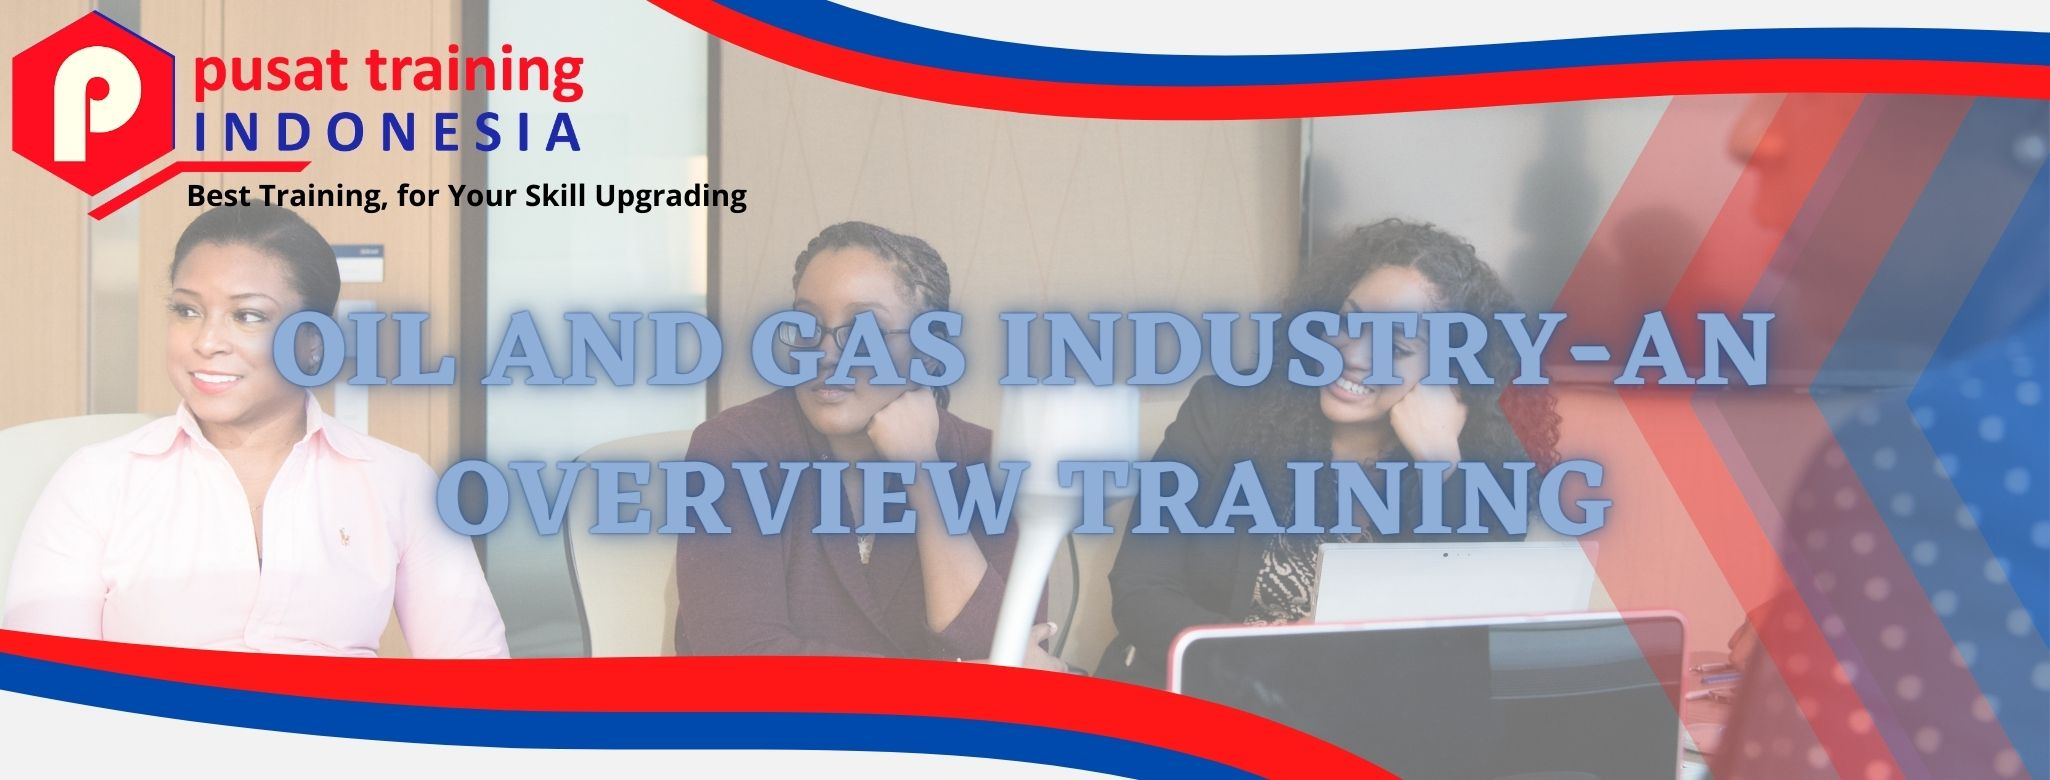 OIL AND GAS INDUSTRY-AN OVERVIEW TRAINING